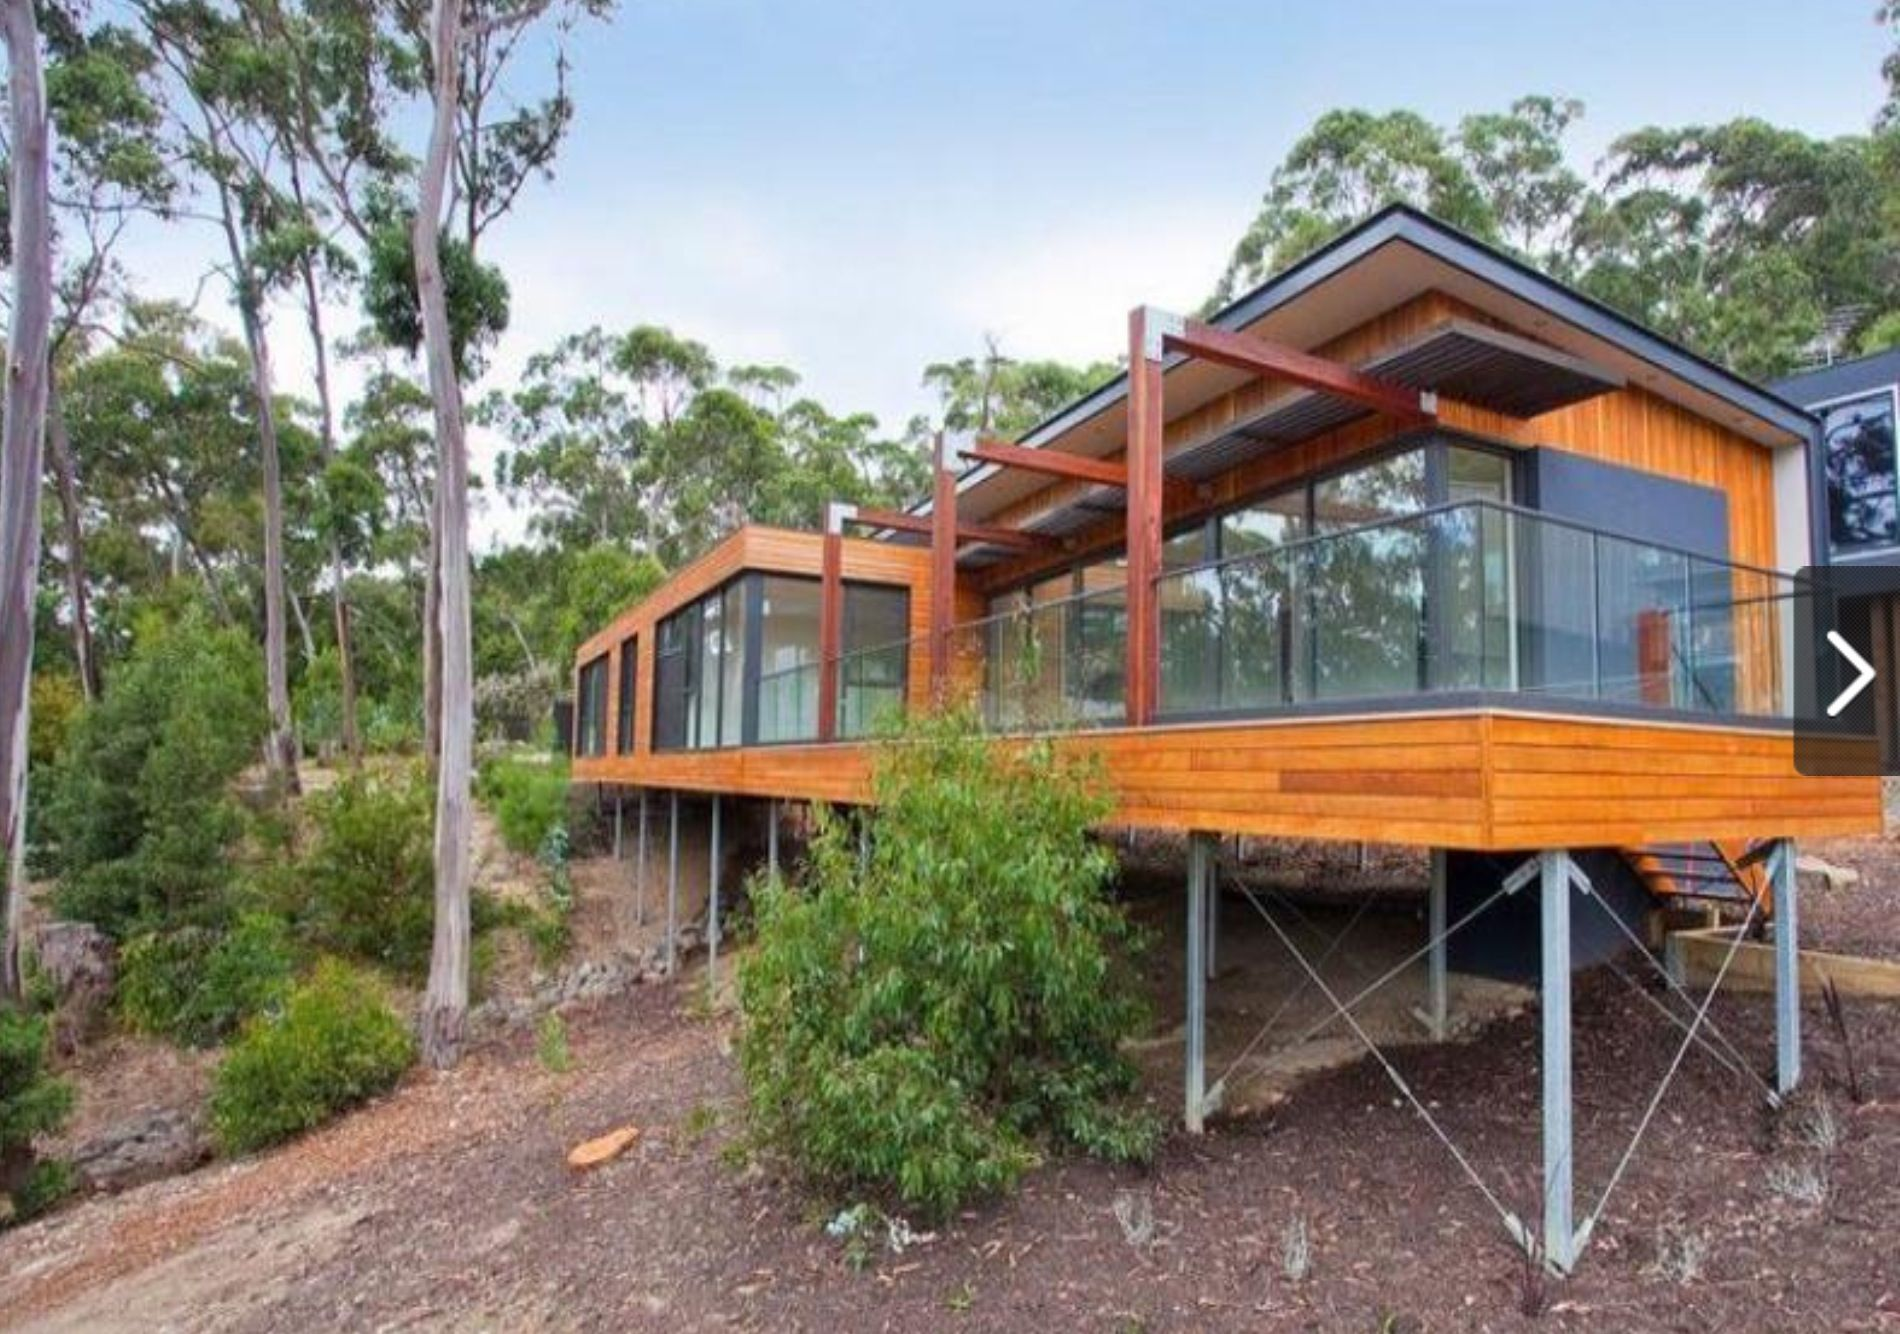 House On Slope Australia House On Stilts Woodland